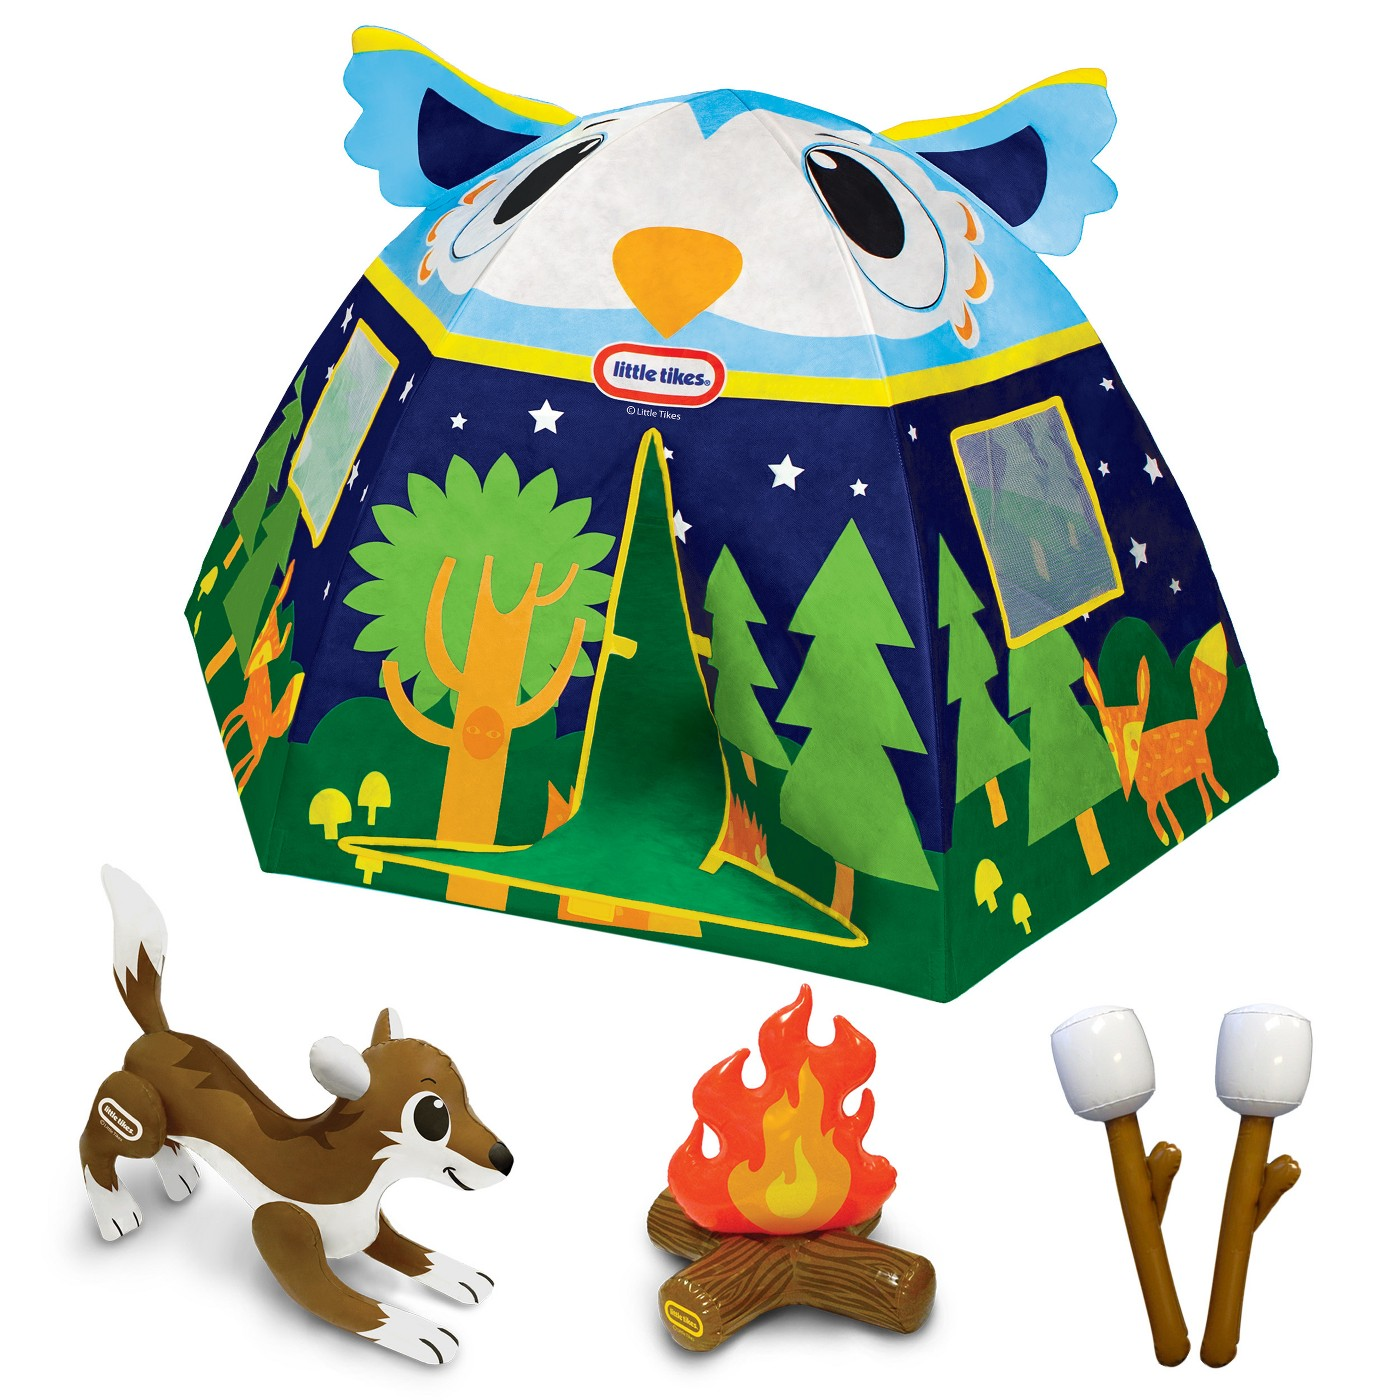 Little Tikes Forrest Friends Owl Tent - image 2 of 2